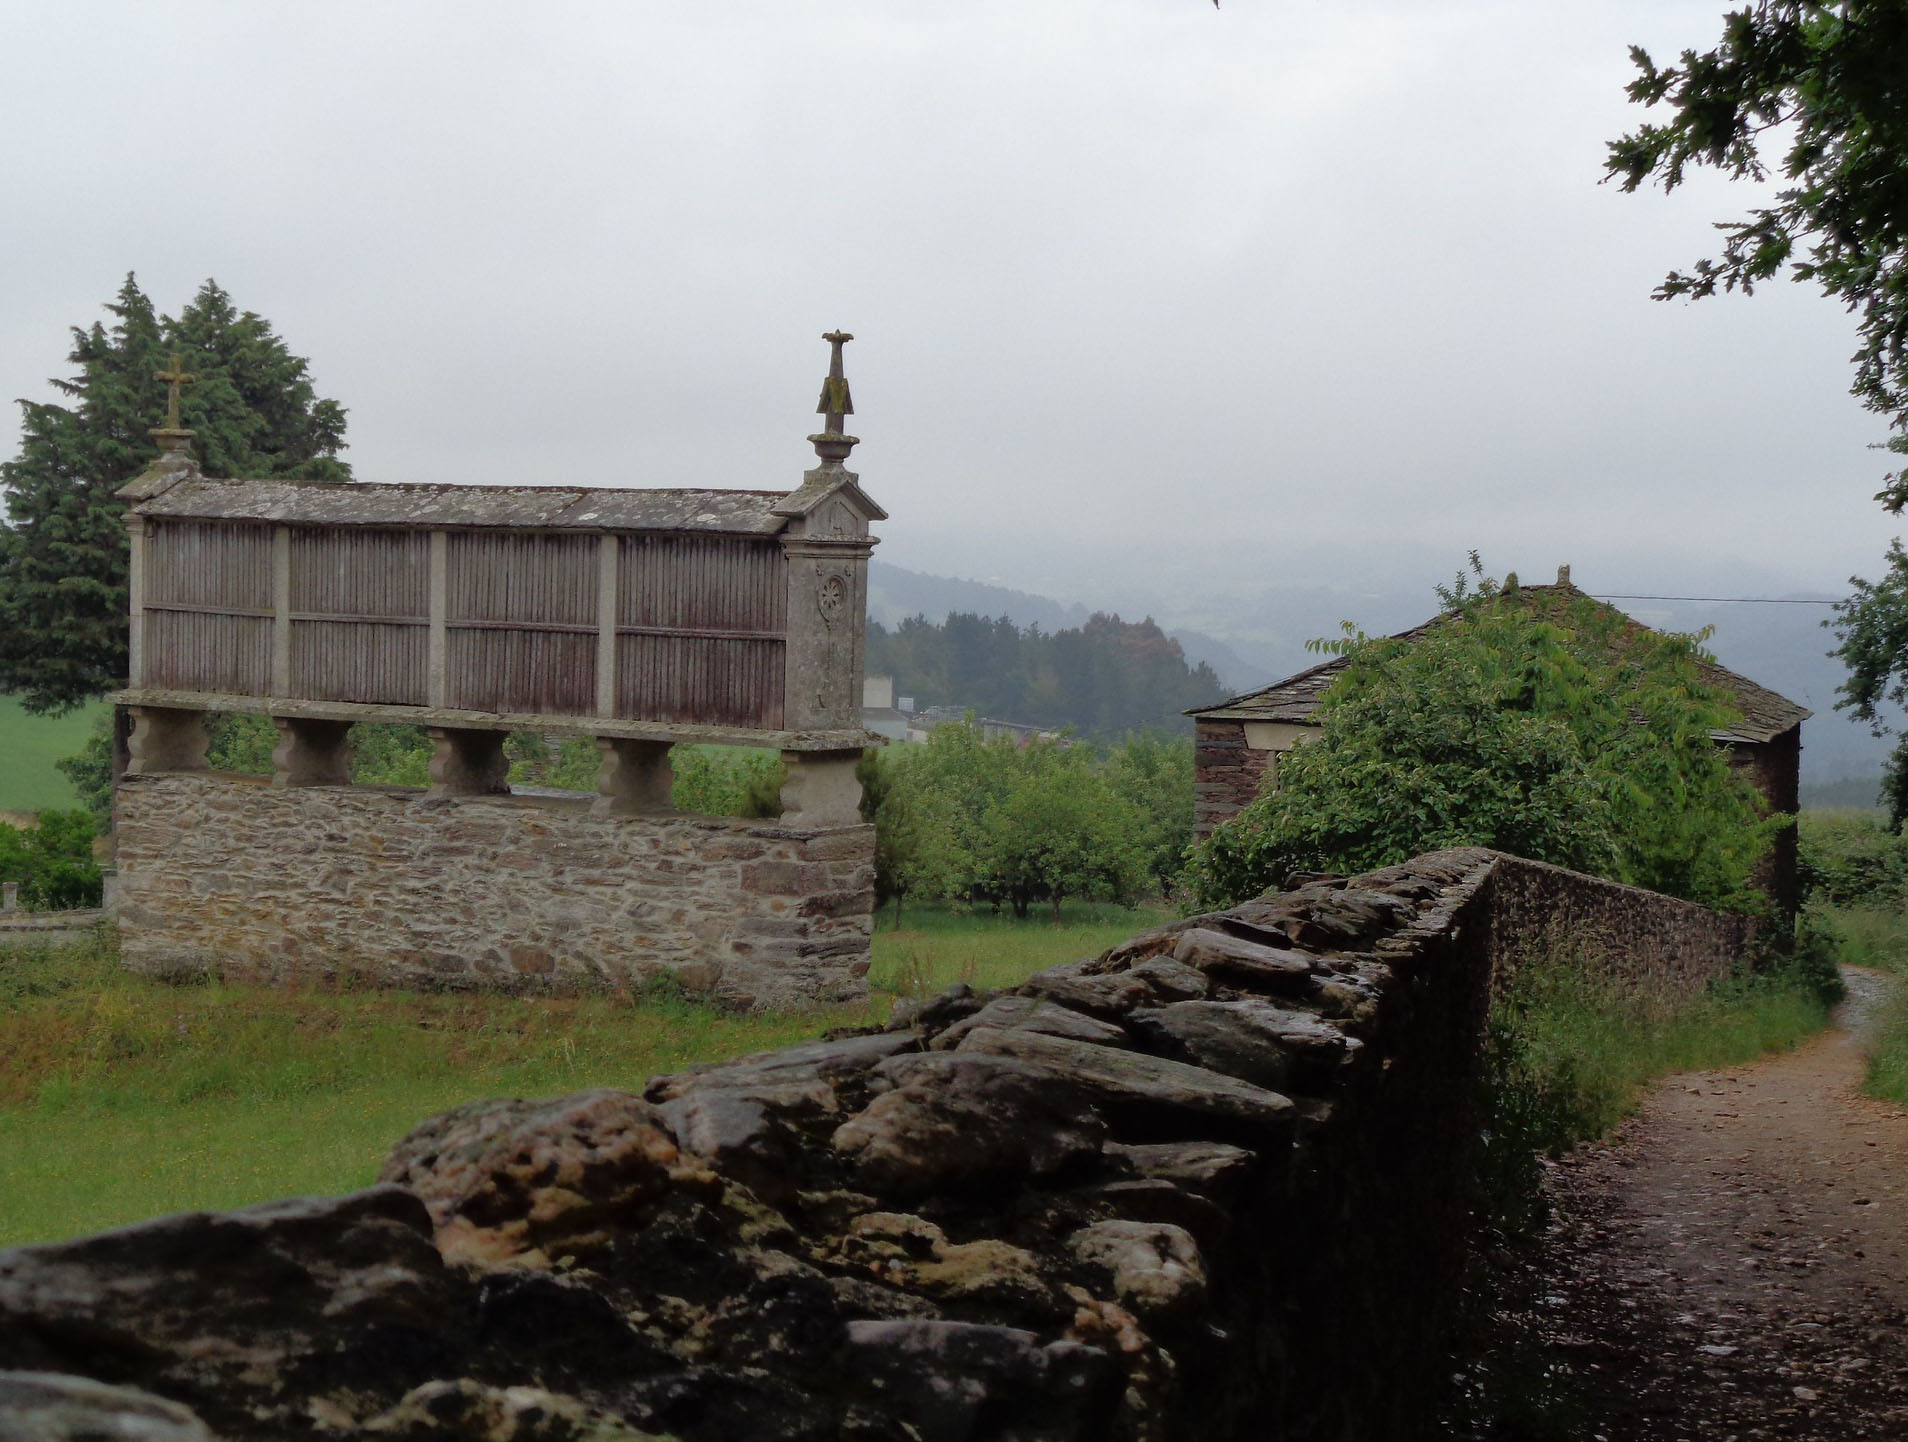 Camino de Santiago Tour - June 19, 2019